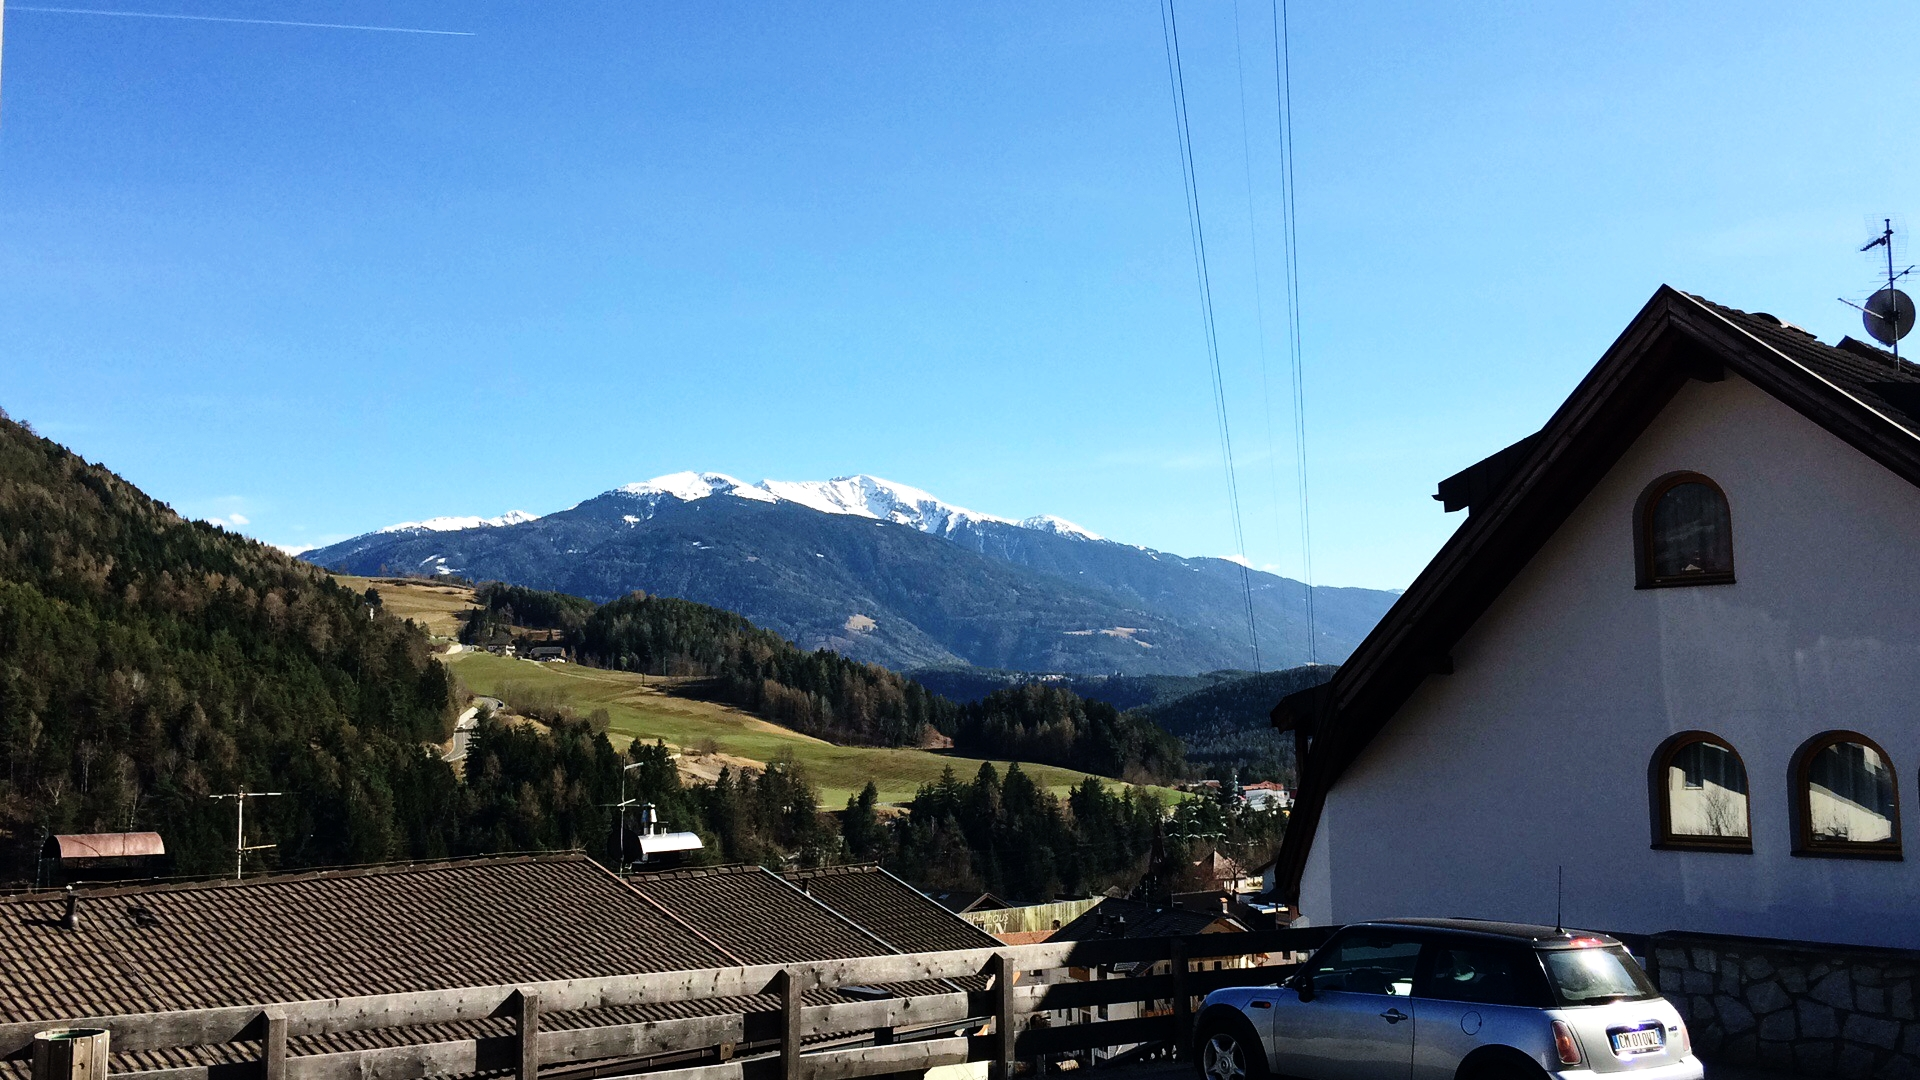 Our last sunny morning in South Tyrol - the view from in front of Christian's family home in Mühlbach, South Tyrol.